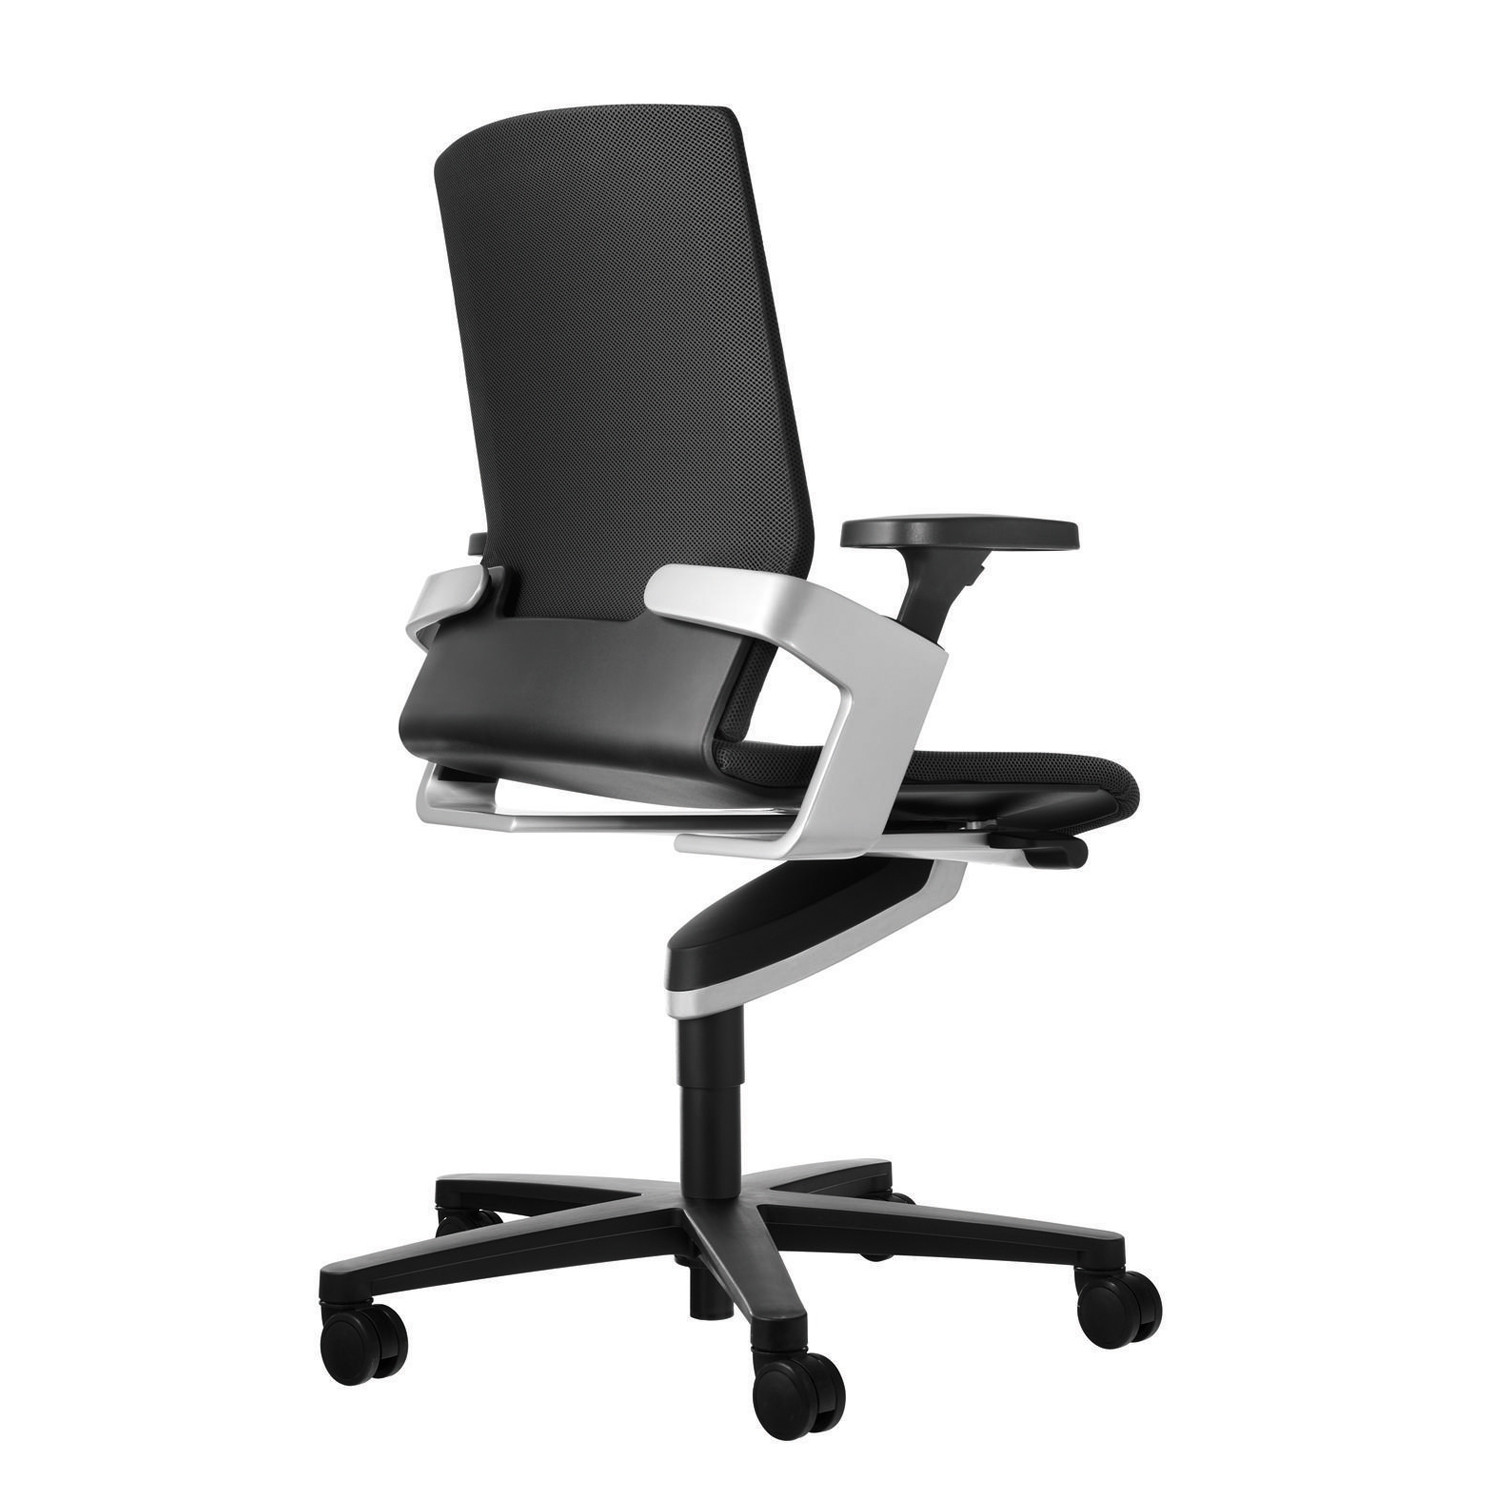 Ergonomic Chair ON by Wilkhahn